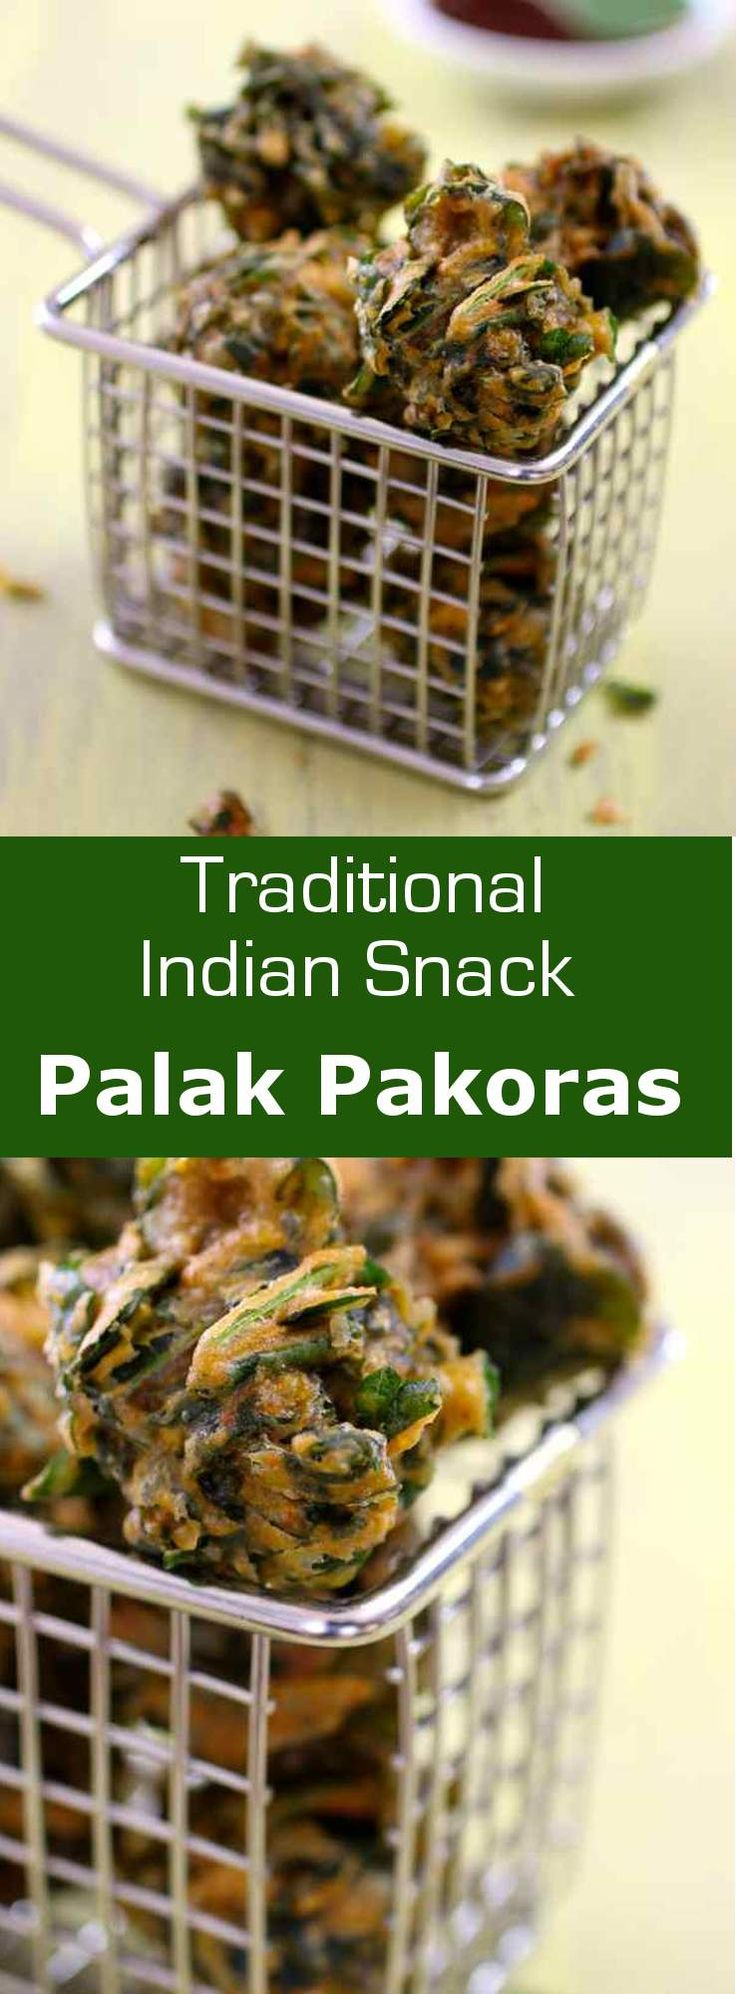 Palak pakoras are Indian fritters prepared with spinach and chickpea flour. #vegetarian #vegan #glutenfree #india #196flavors